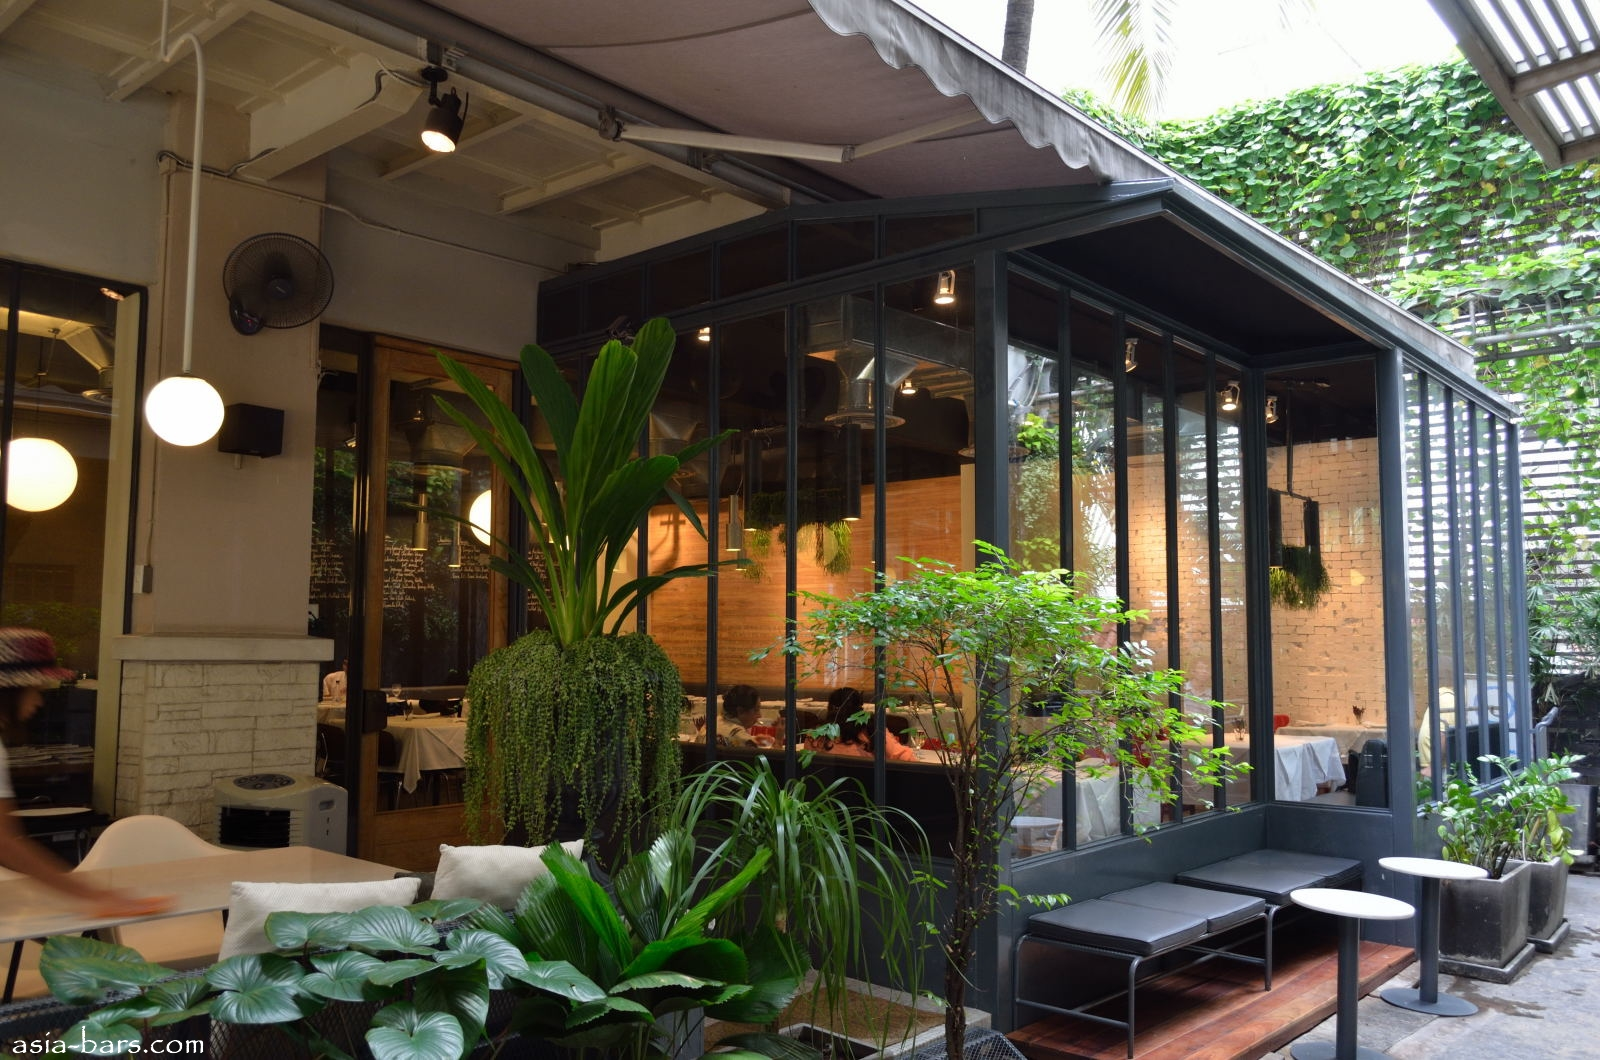 Greyhound Cafe Chic Urban Cafe Serving Innovative Thai